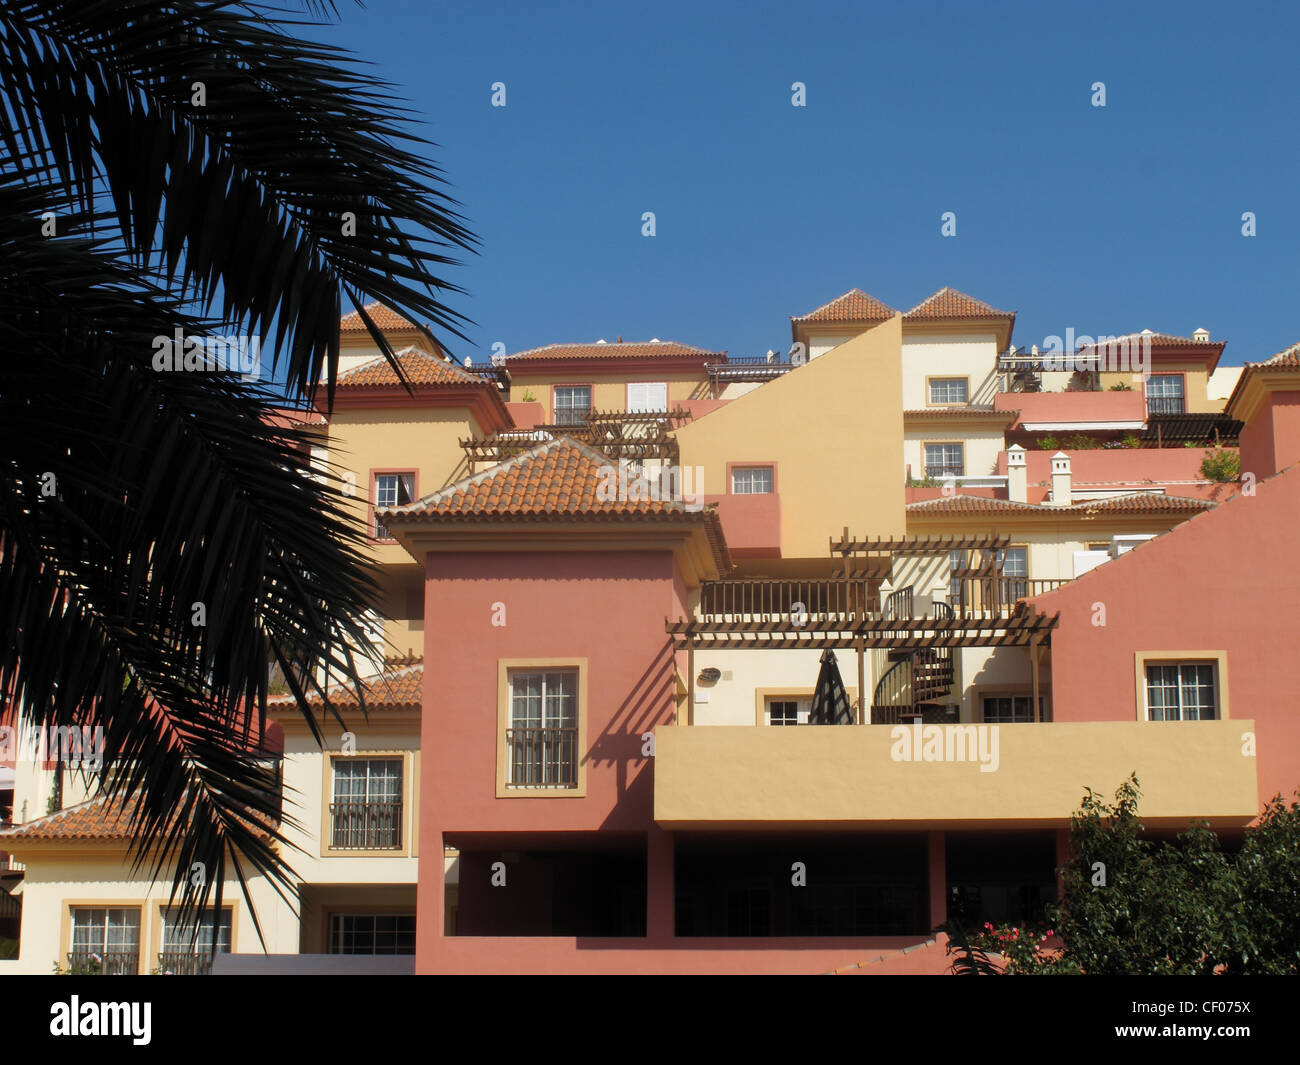 Brightly coloured houses with balconies in Costa Adeje, Tenerife, Canary Islands - Stock Image